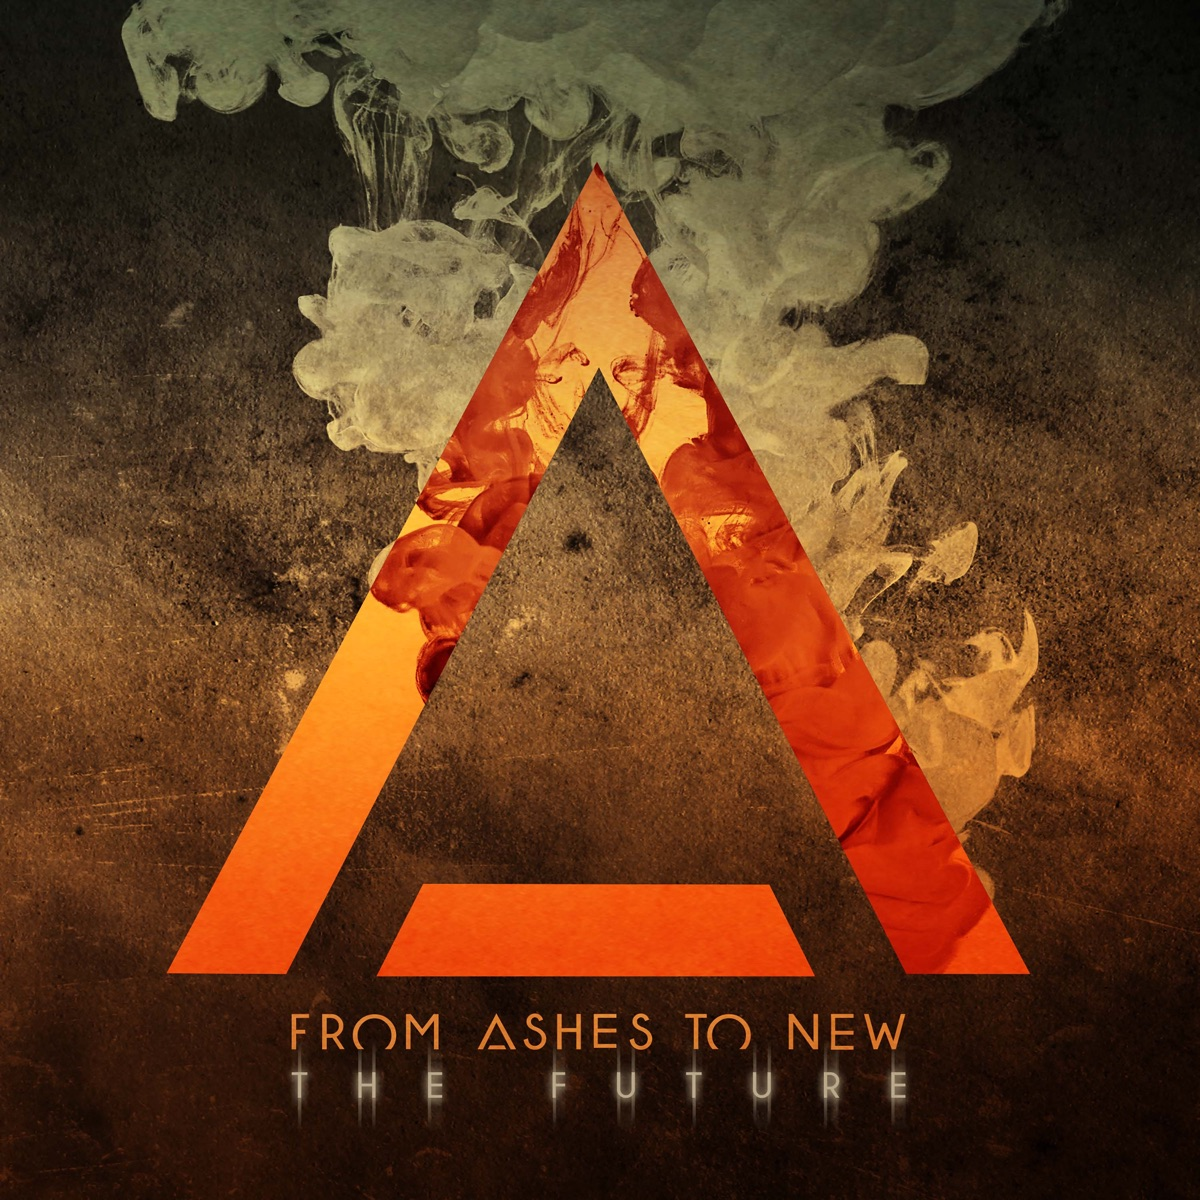 My Name - Single Album Cover by From Ashes to New